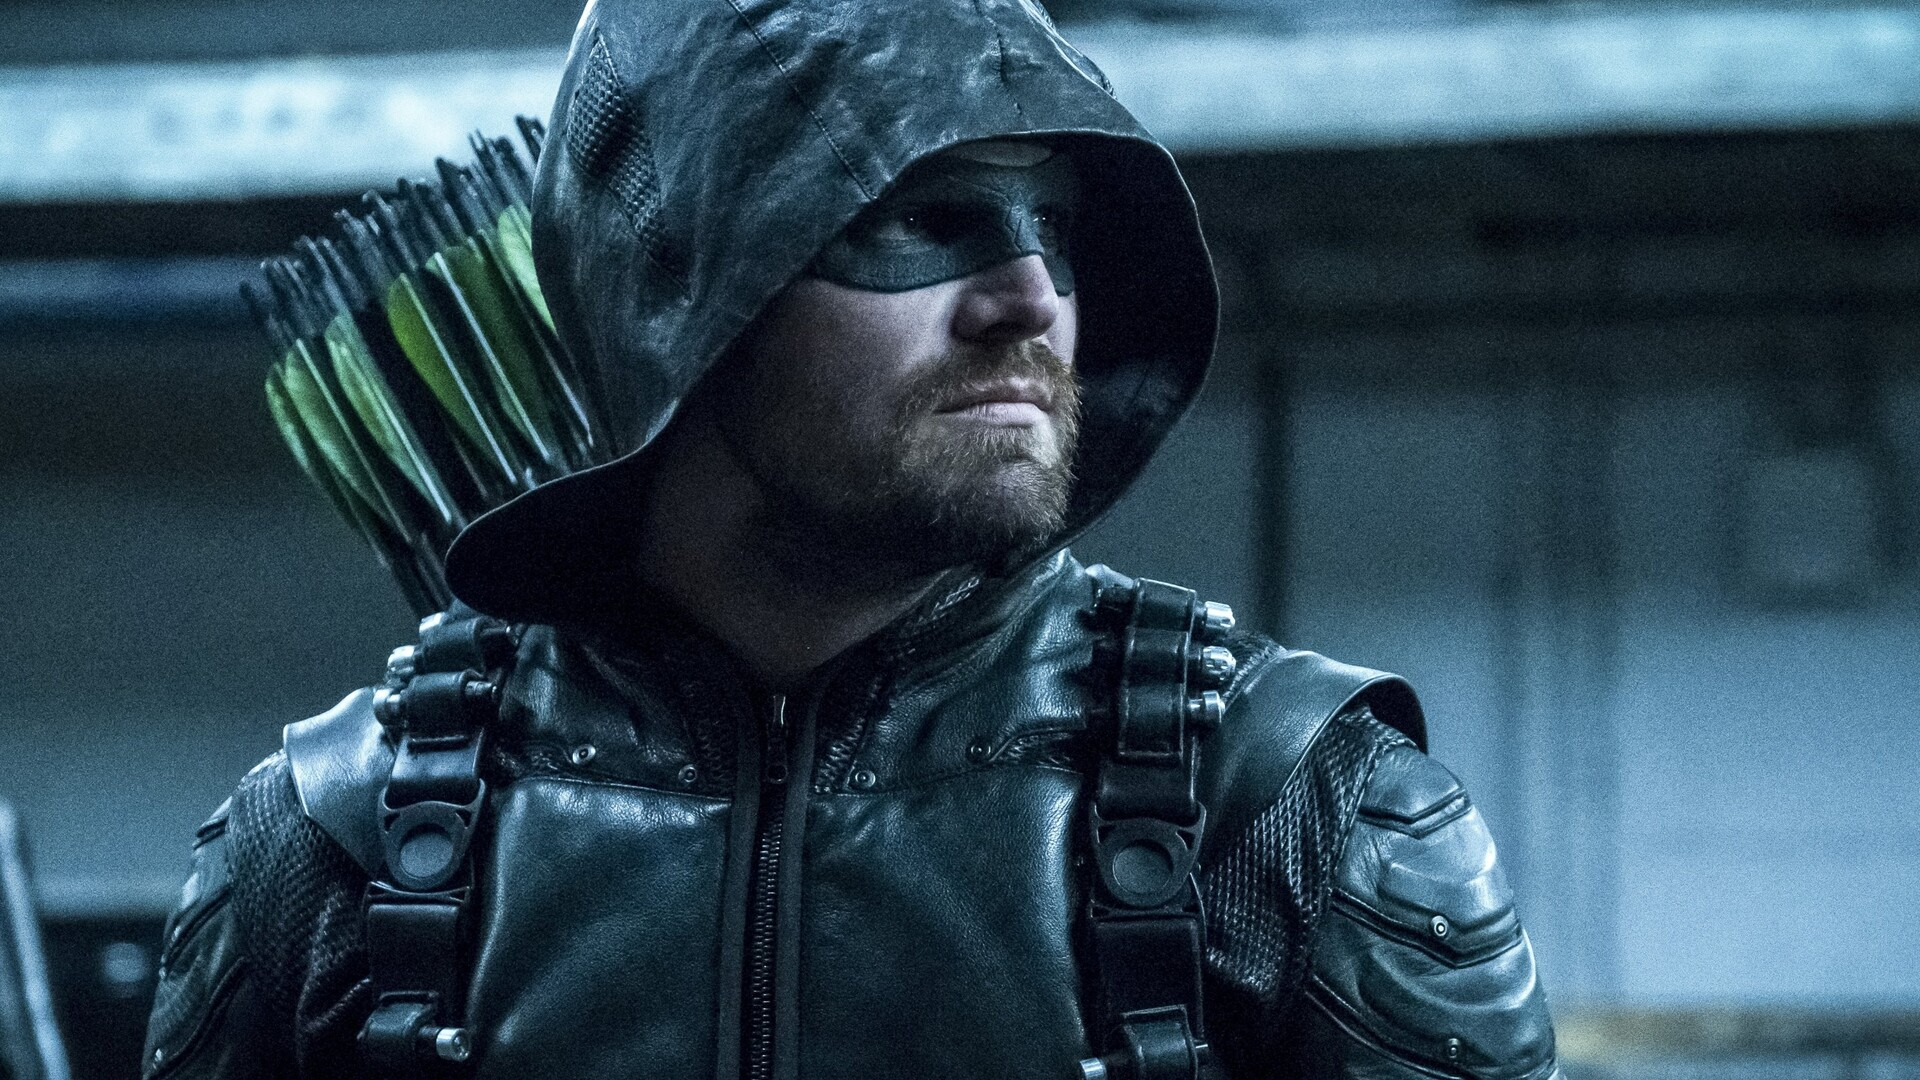 arrow-season-6-2018-nz.jpg